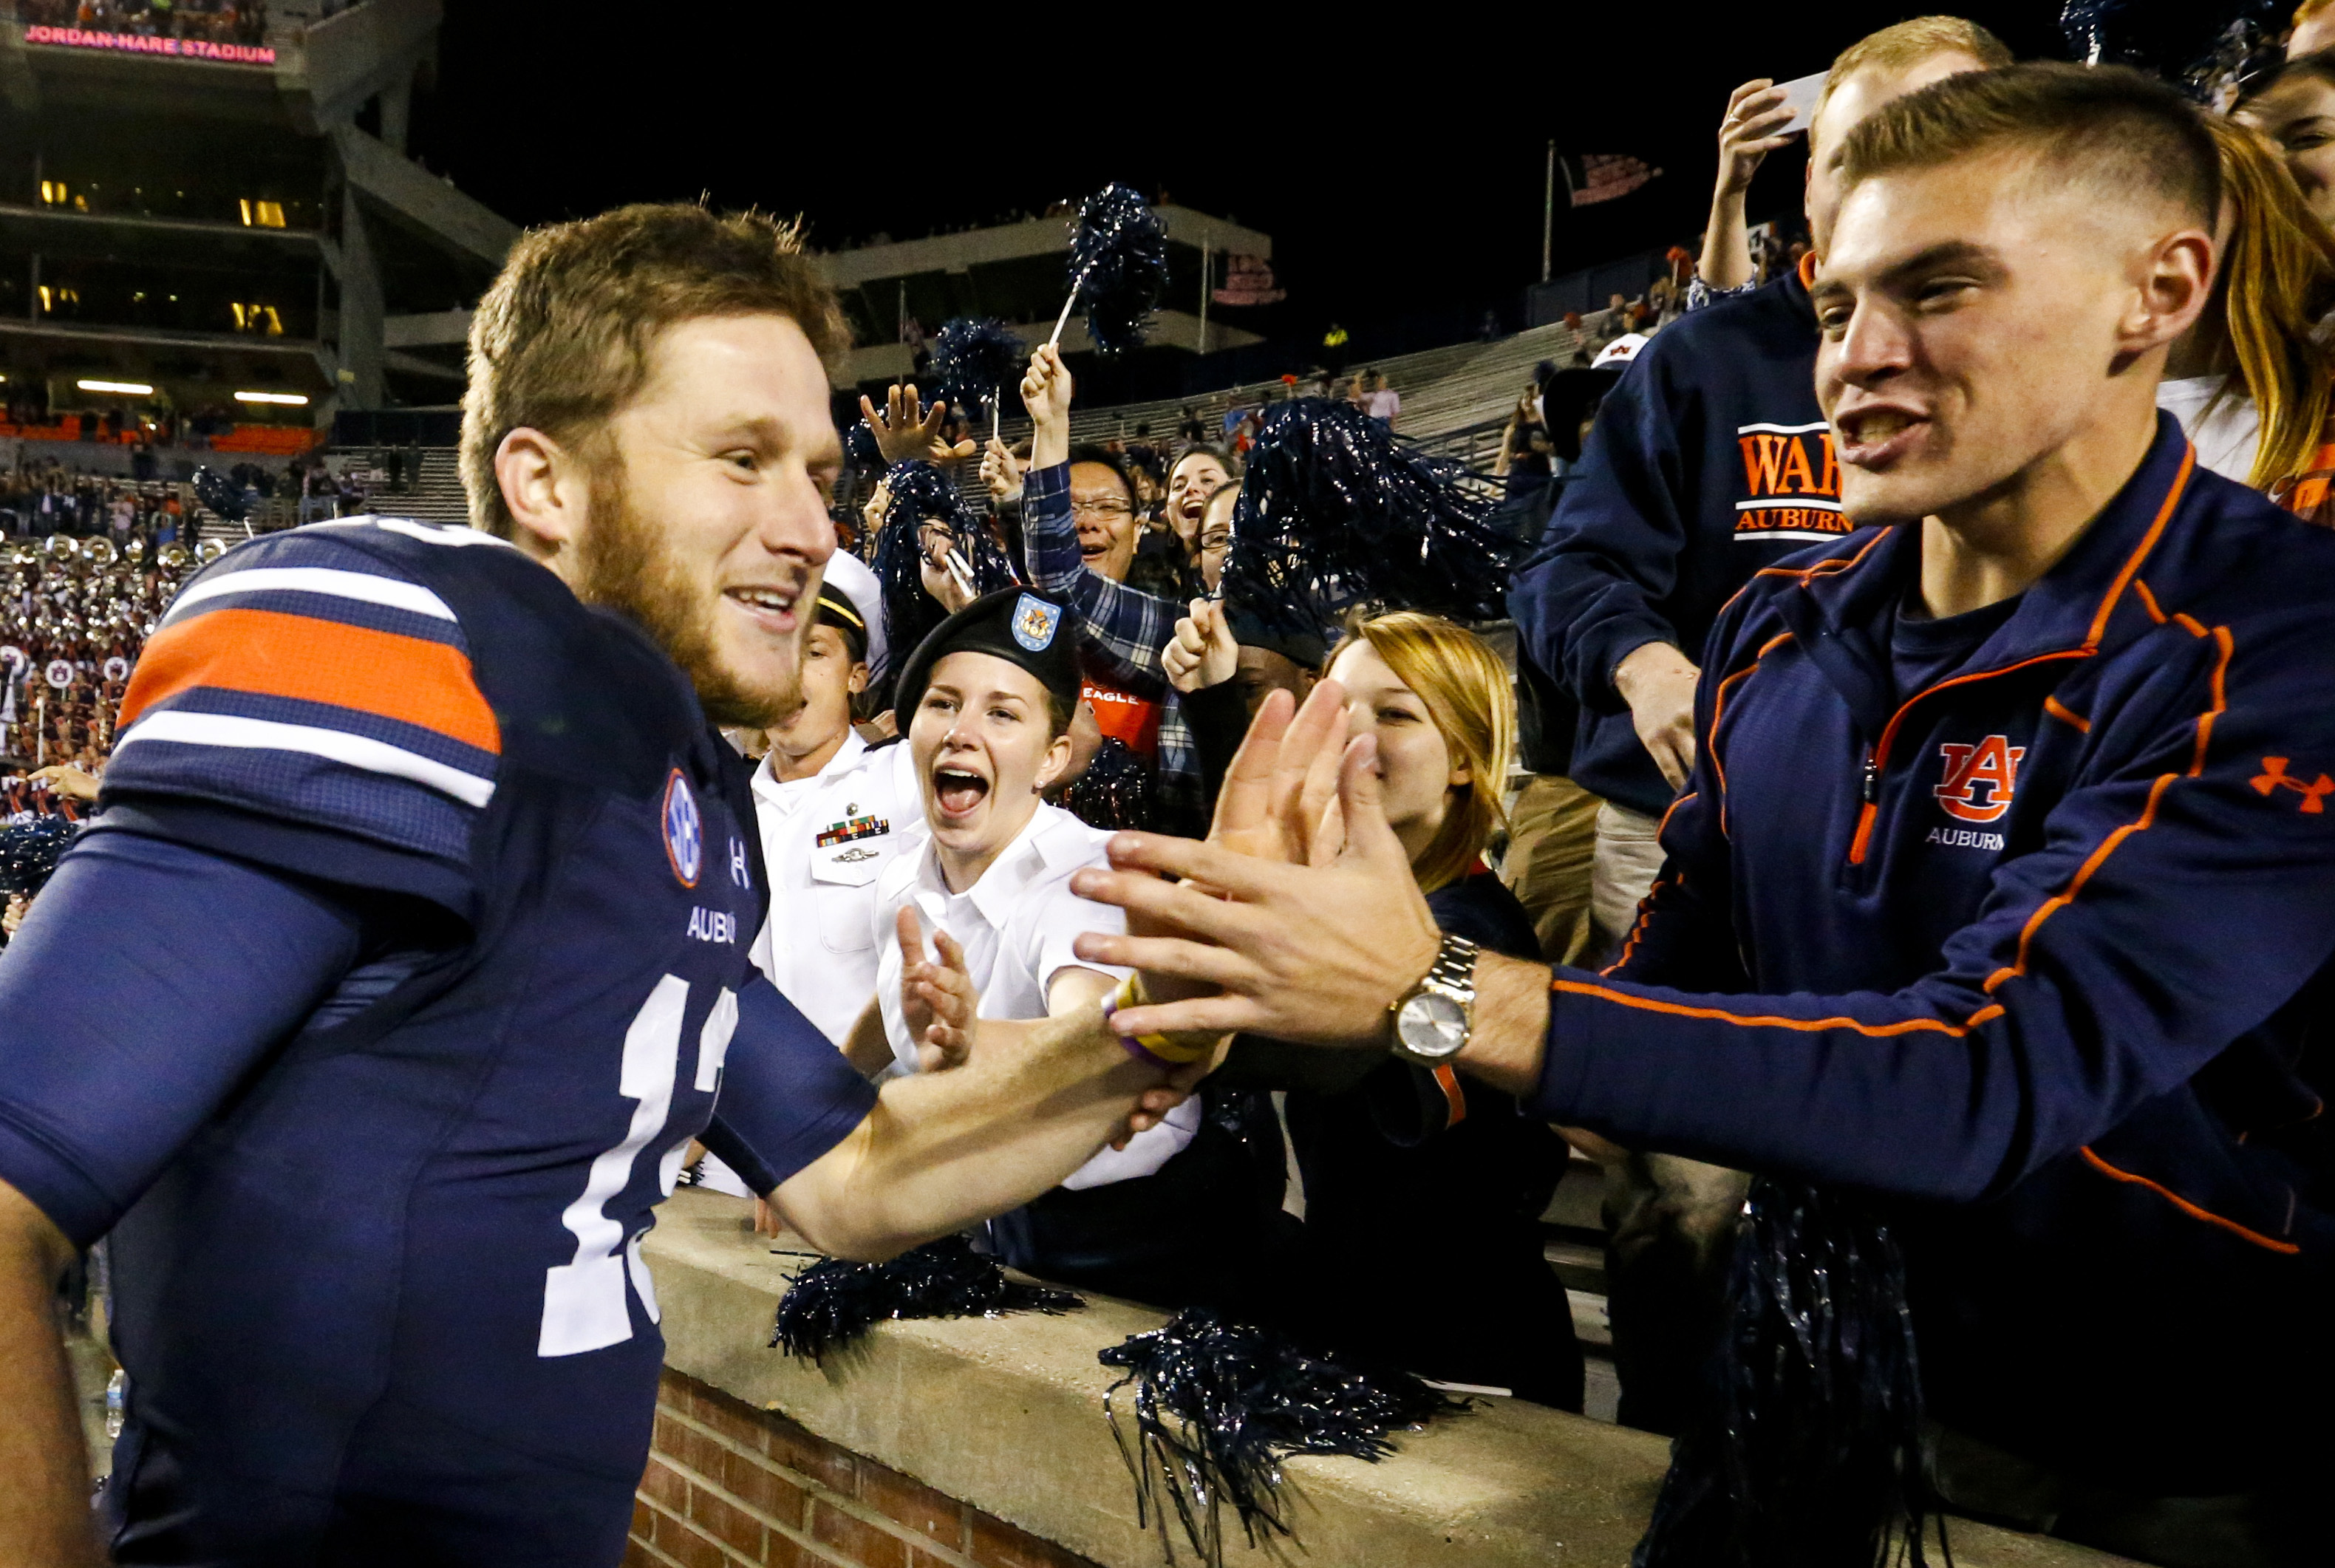 Auburn quarterback Sean White (13) celebrates with fans after they defeated Arkansas 56-3 in an NCAA college football game, Saturday, Oct. 22, 2016, in Auburn, Ala. (AP Photo/Butch Dill)